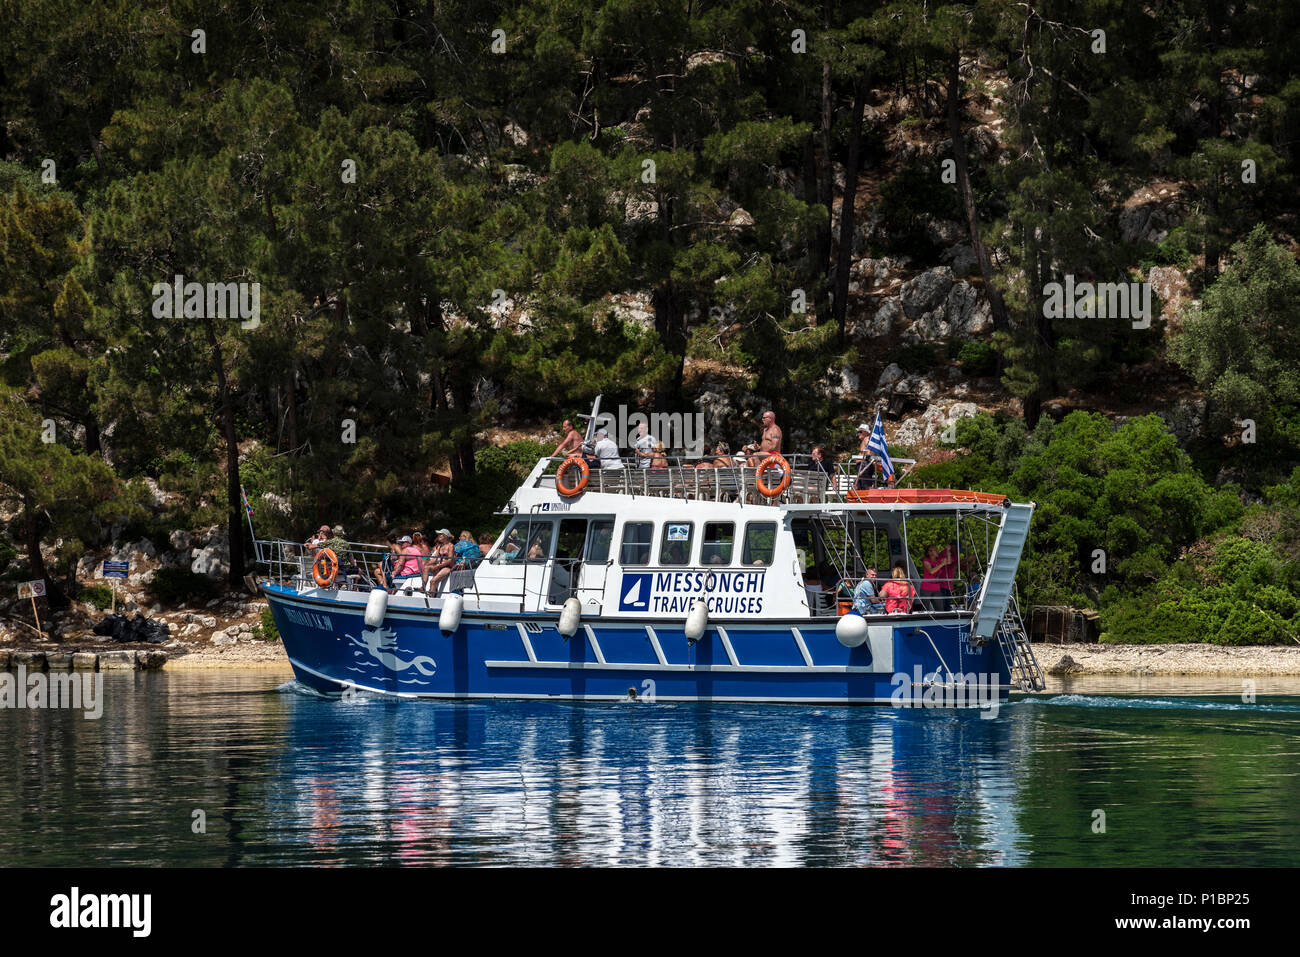 Tourist Boat in Gaios, Paxos. - Stock Image